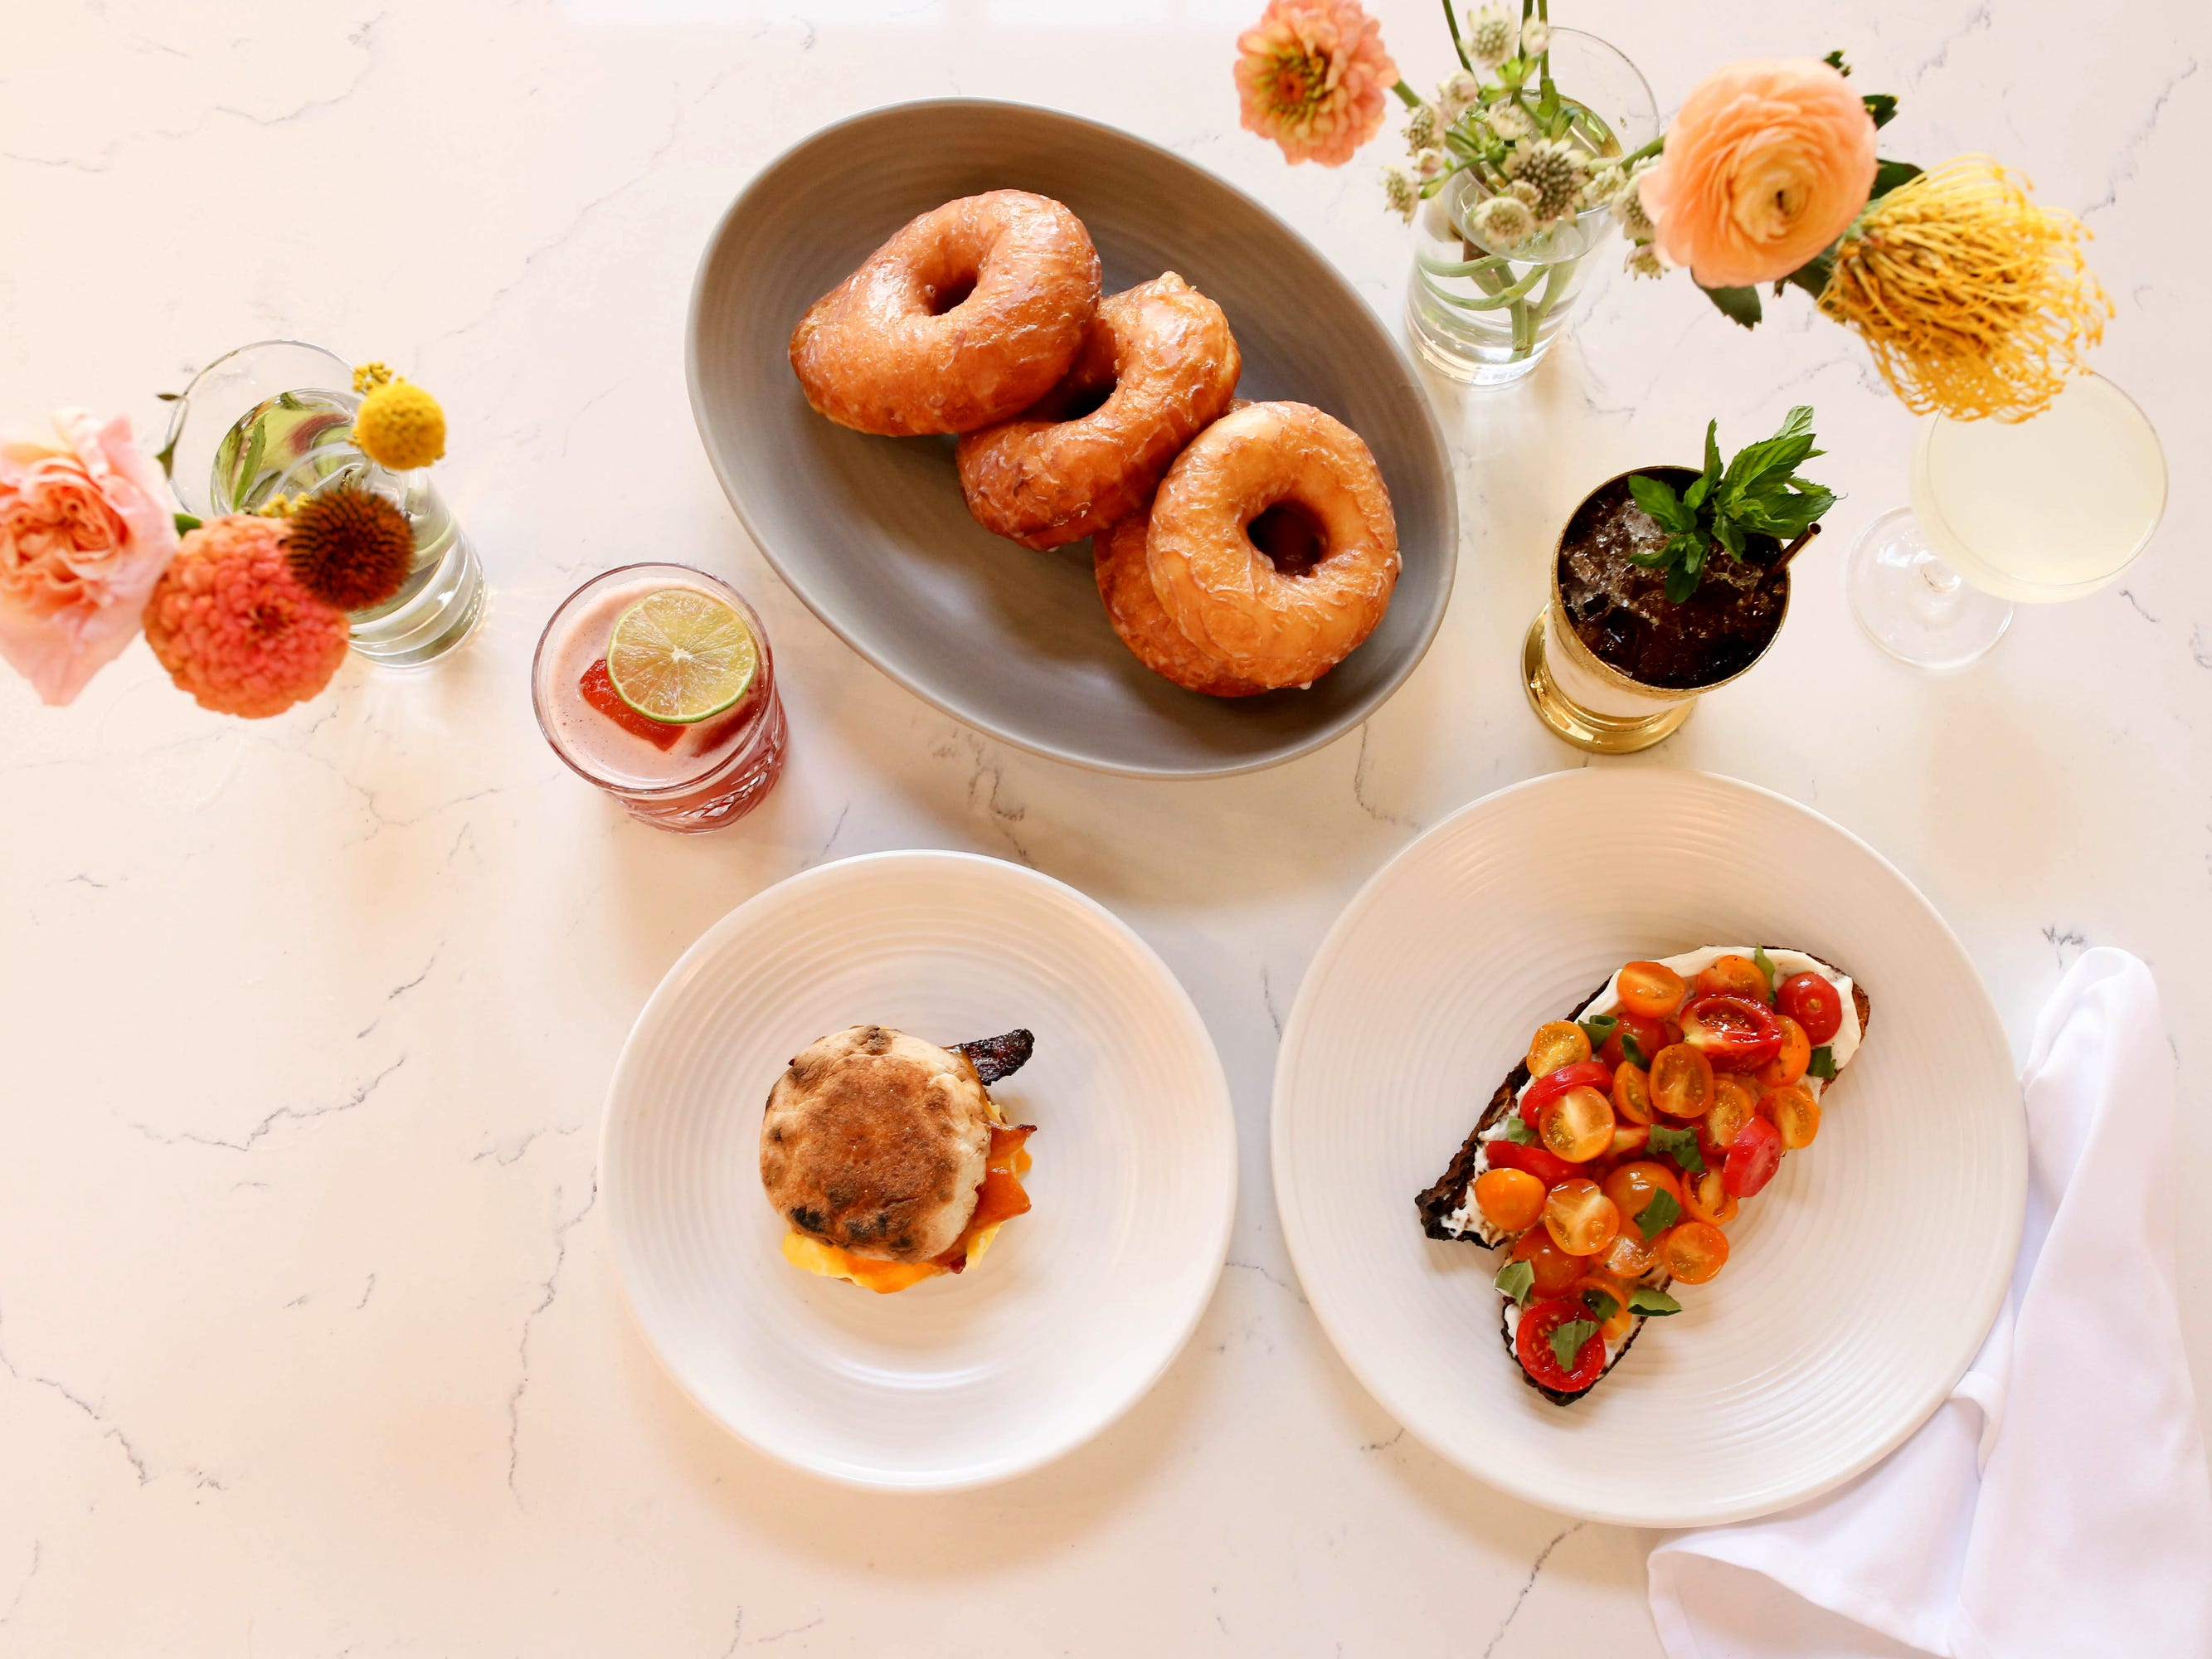 Vanilla glazed doughnuts, breakfast sandwich and beverages at Stay Golden restaurant and roastery.